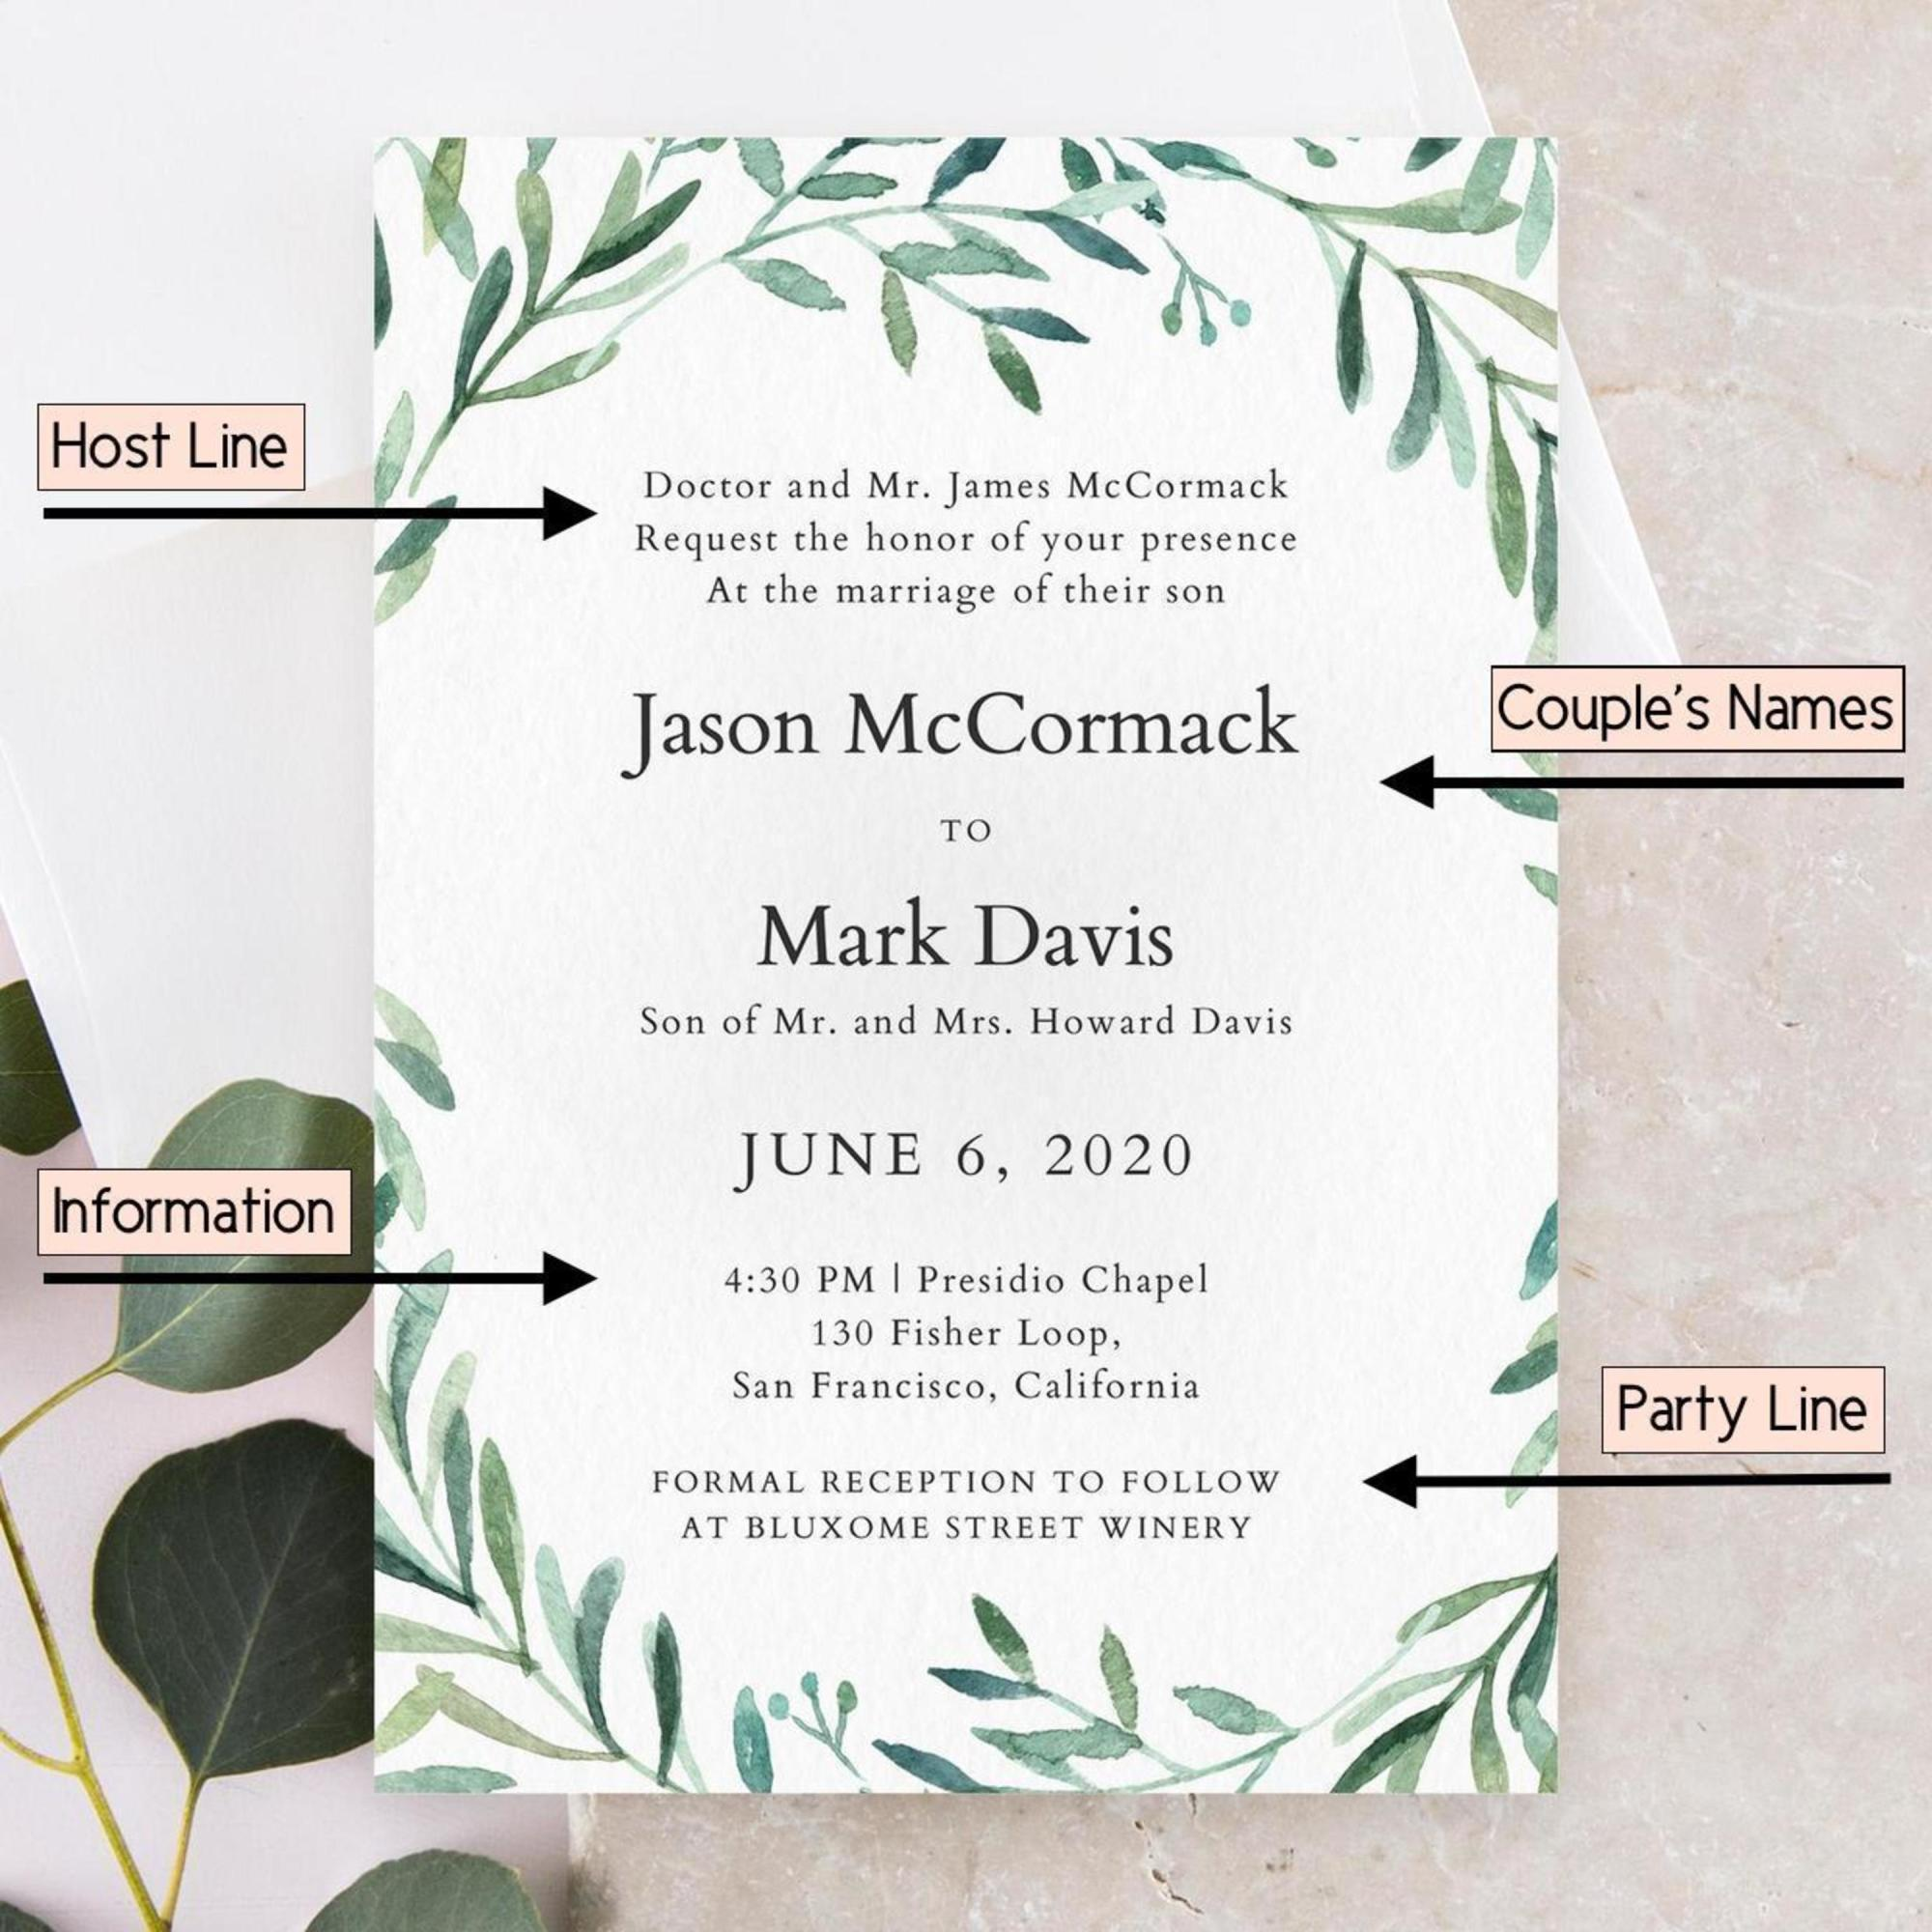 Wedding Invitation In English Wordings: How To Word Wedding Invitations